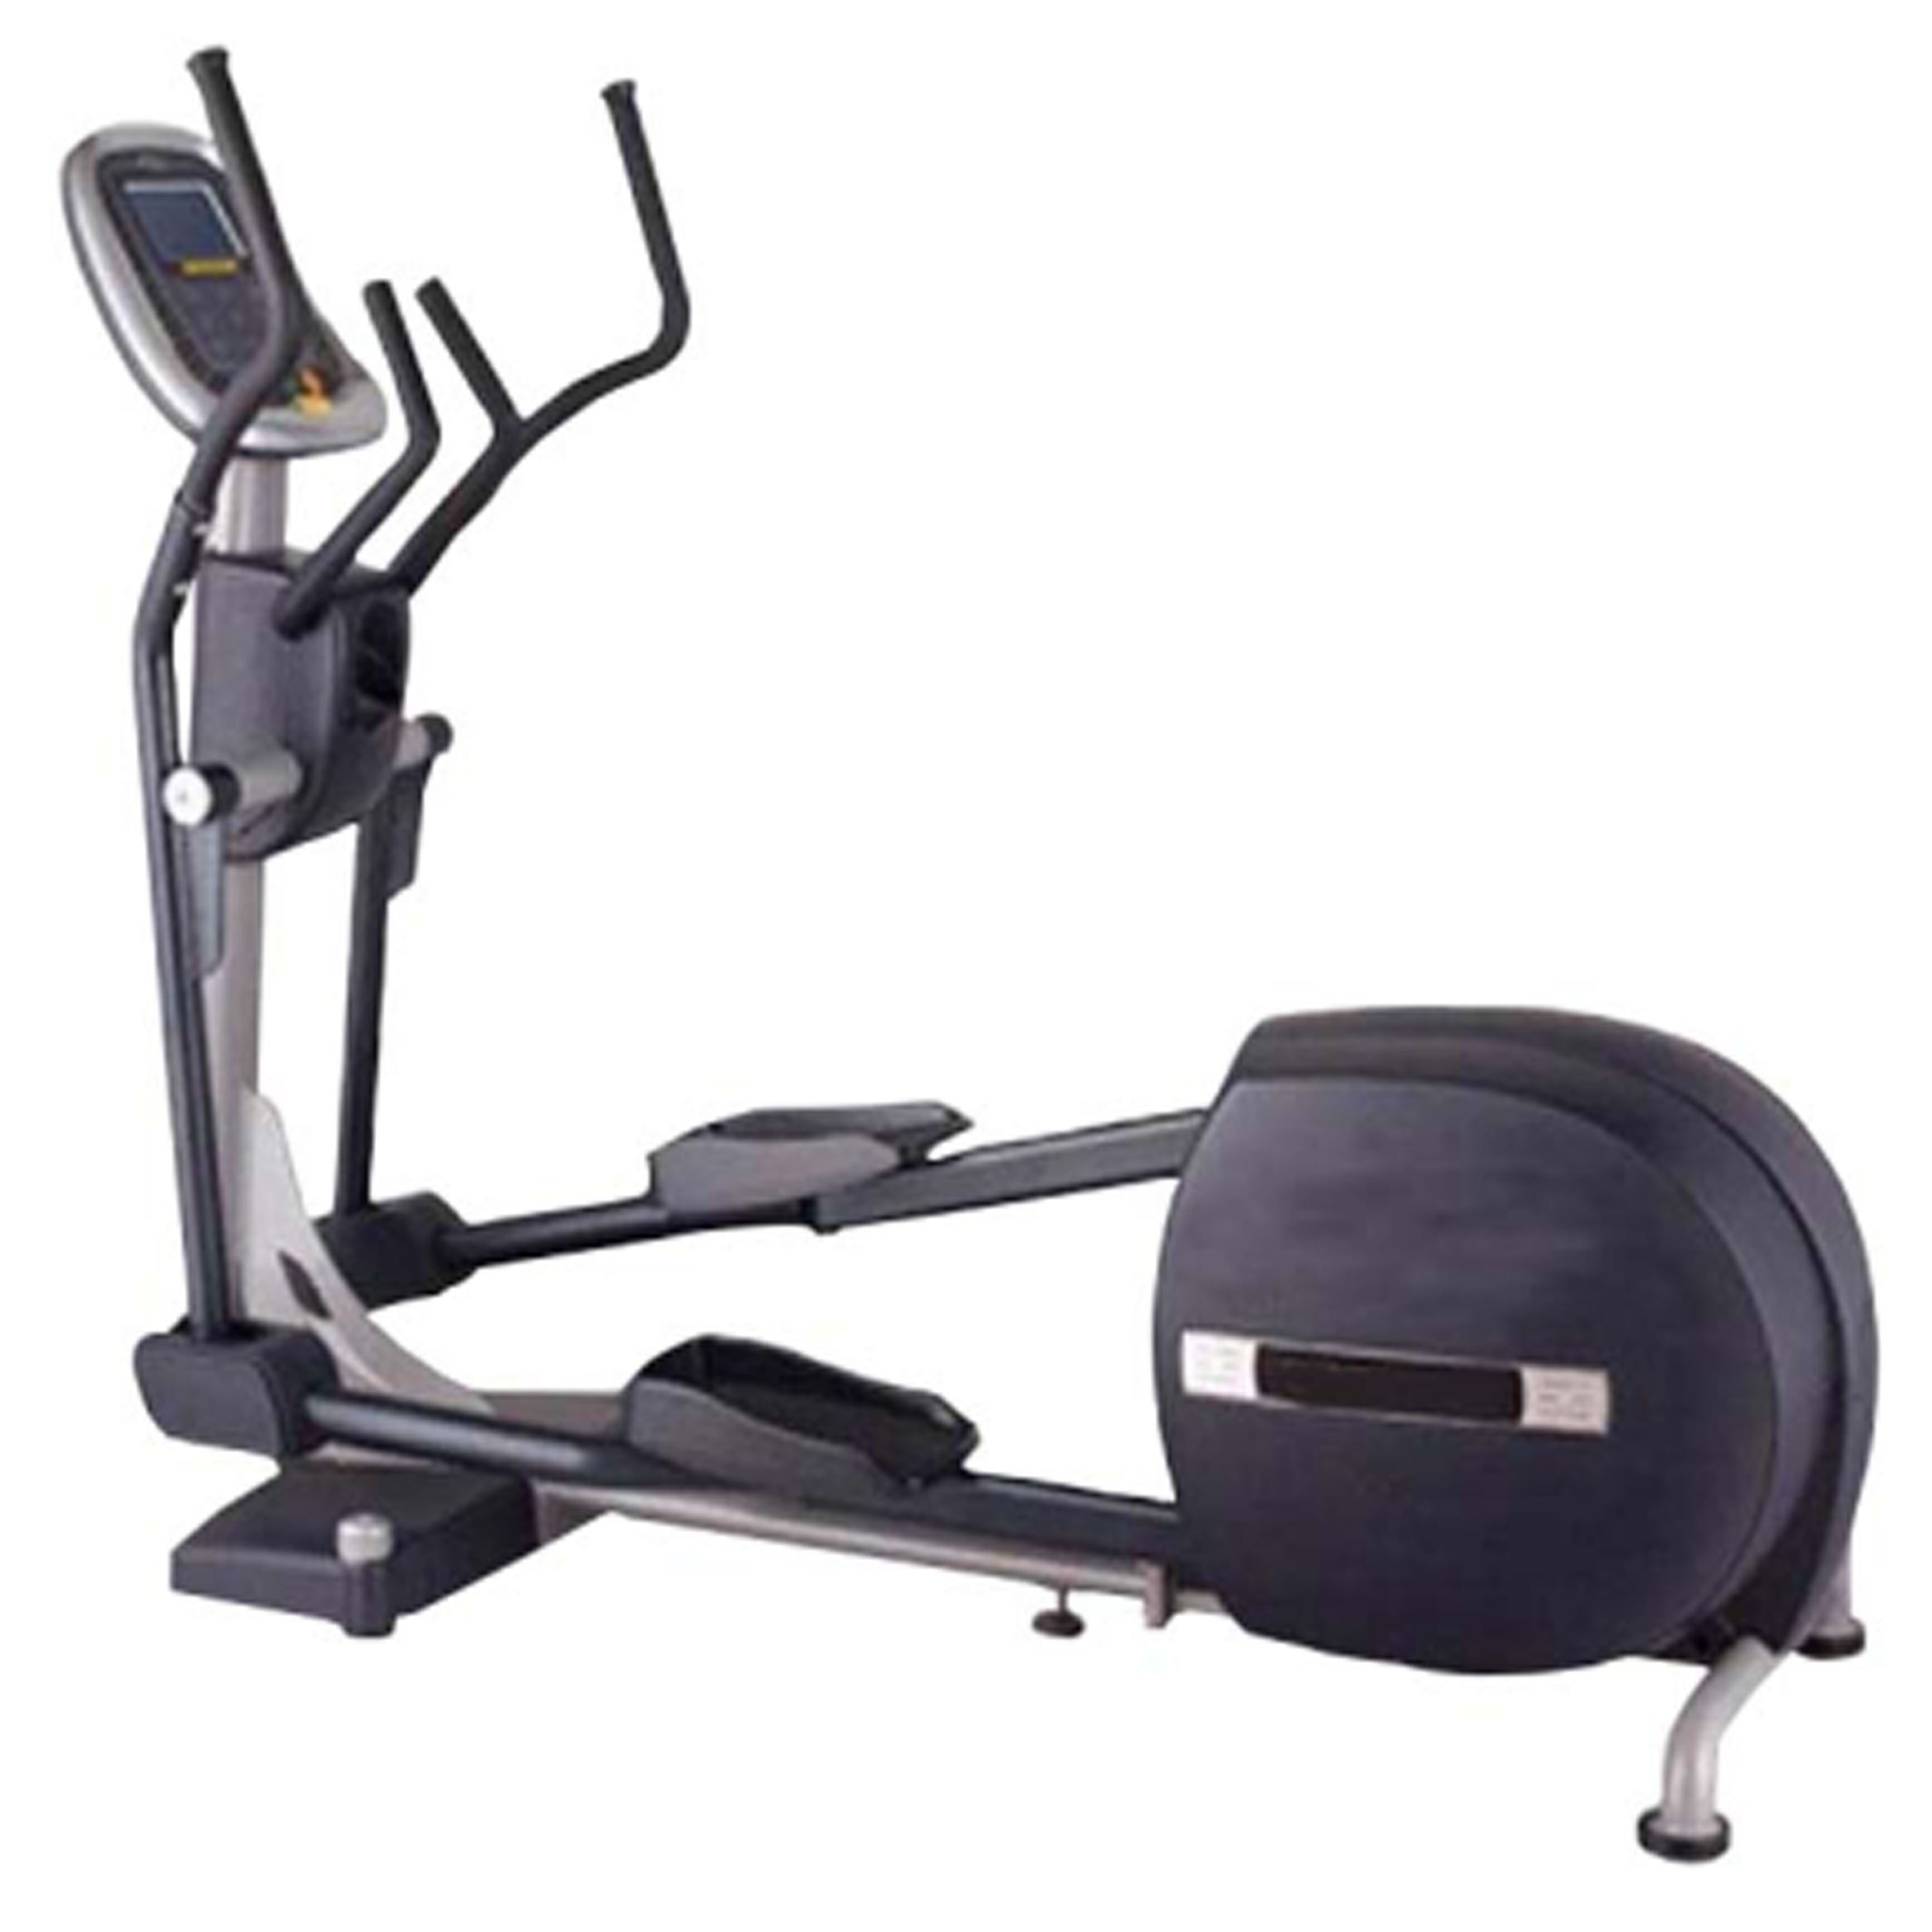 Ganas Heavy duty cross trainer/elliptical exercise machine orbital elliptical bike